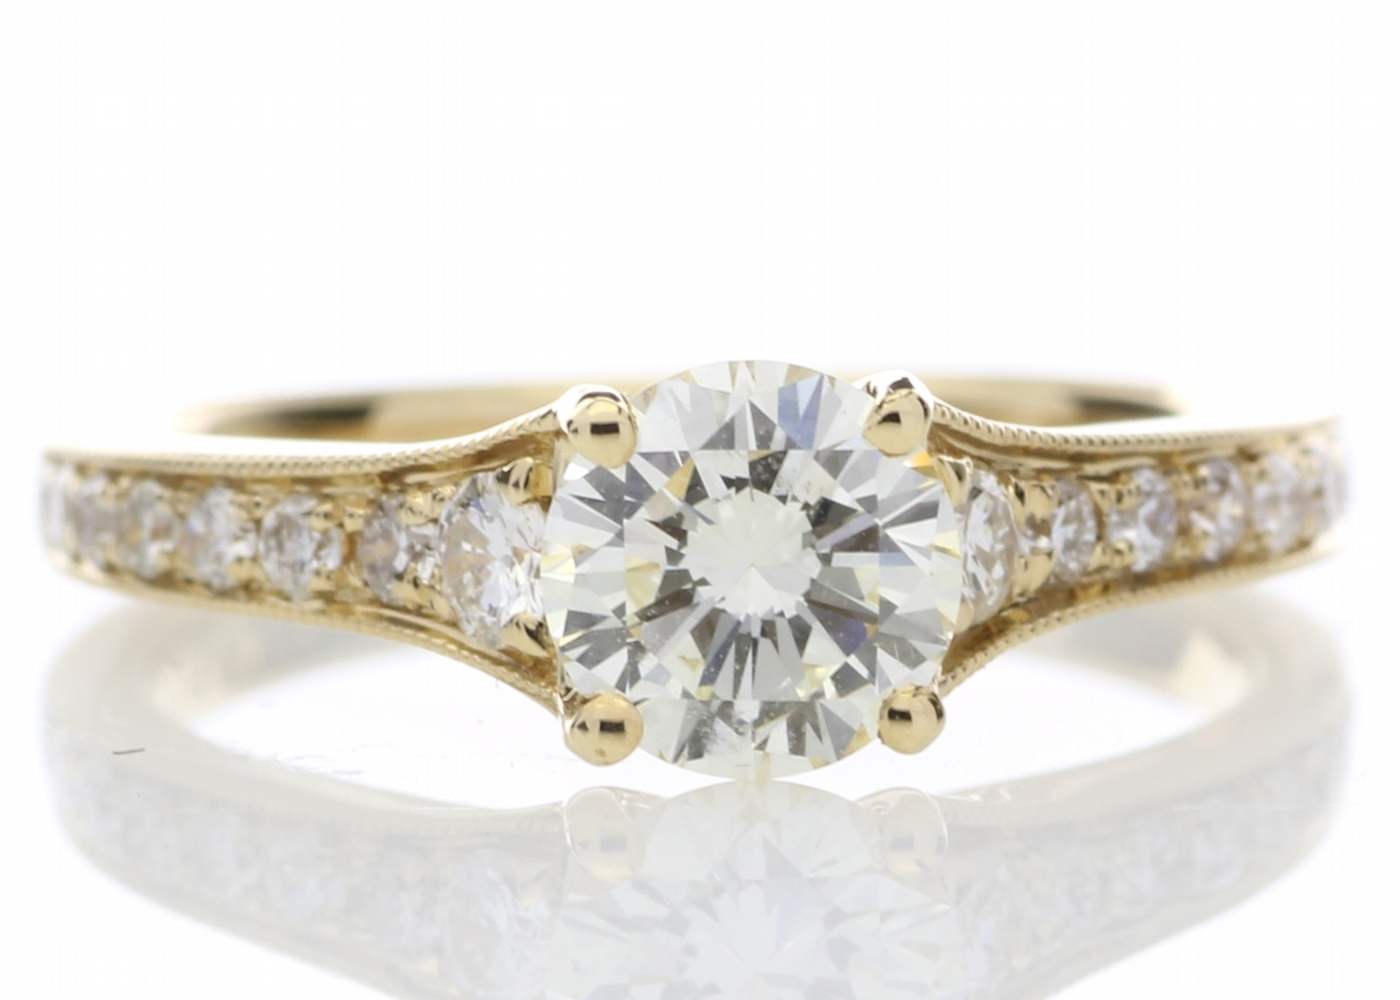 Lot 8 - 18ct Yellow Gold Diamond Ring With Stone Set Shoulders 1.06 Carats